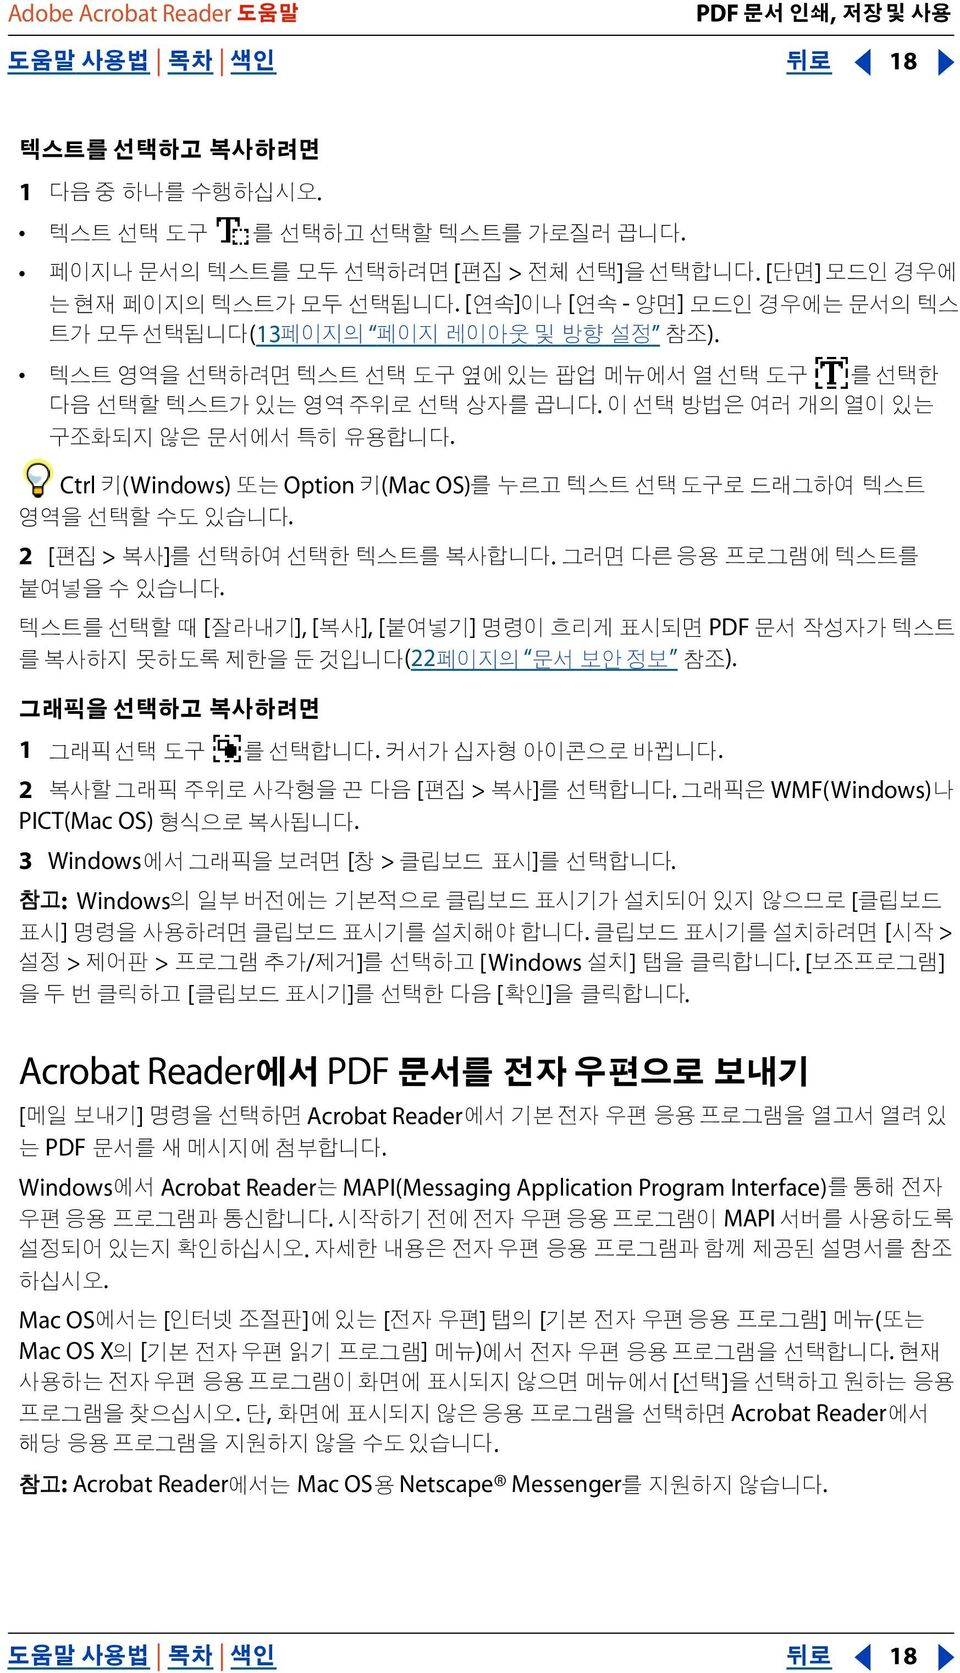 Windows Acrobat Reader MAPI(Messaging Application Program Interface). MAPI.. Mac OS [ ] [ ] [ ] ( Mac OS X [ ] ).